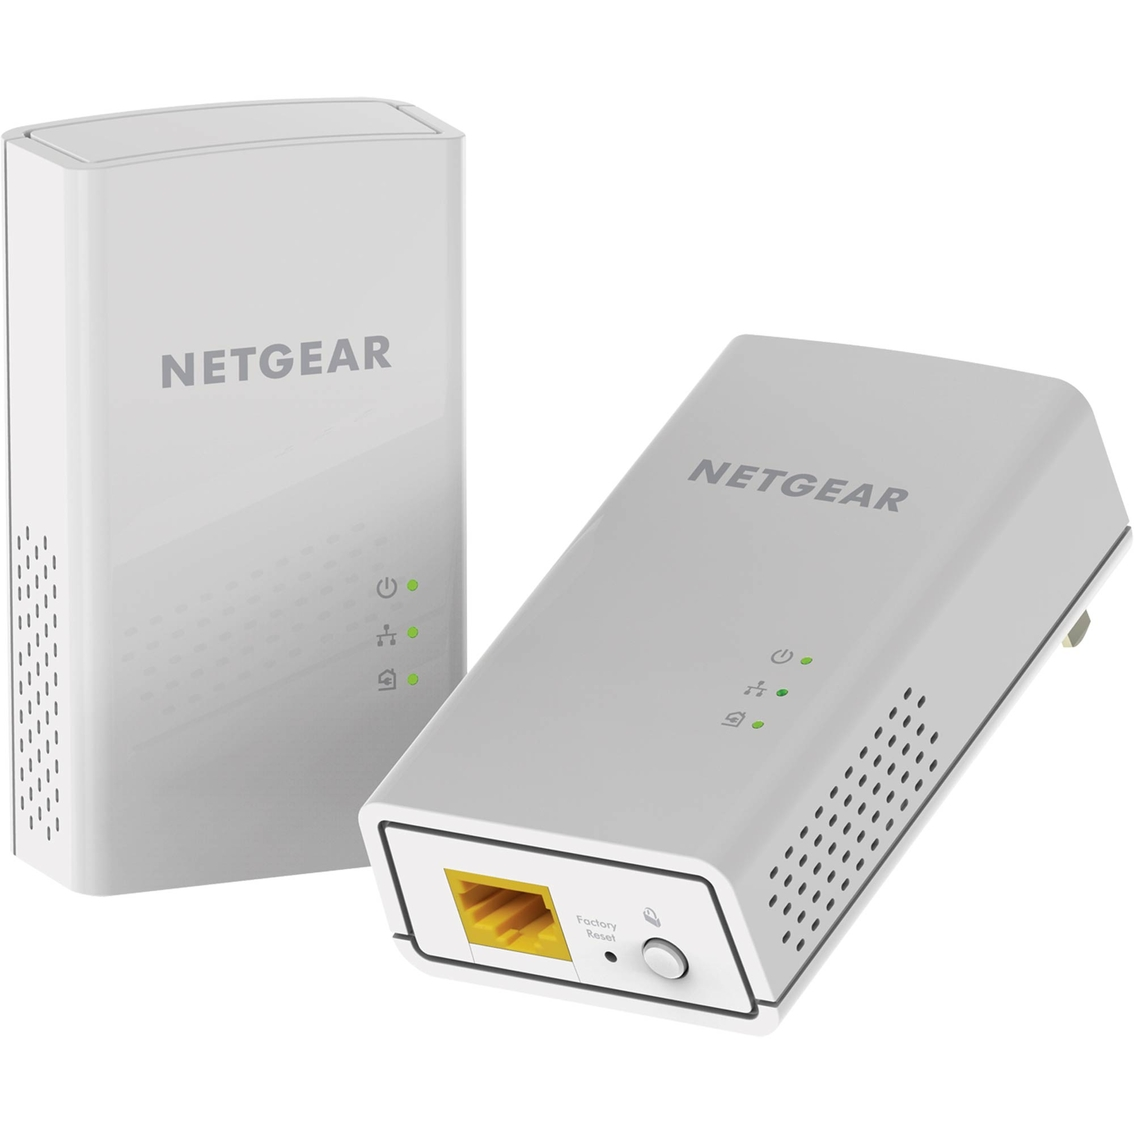 Netgear Powerline 1200 Hubs Modems Ports Routers Switches Modem Wiring Diagram